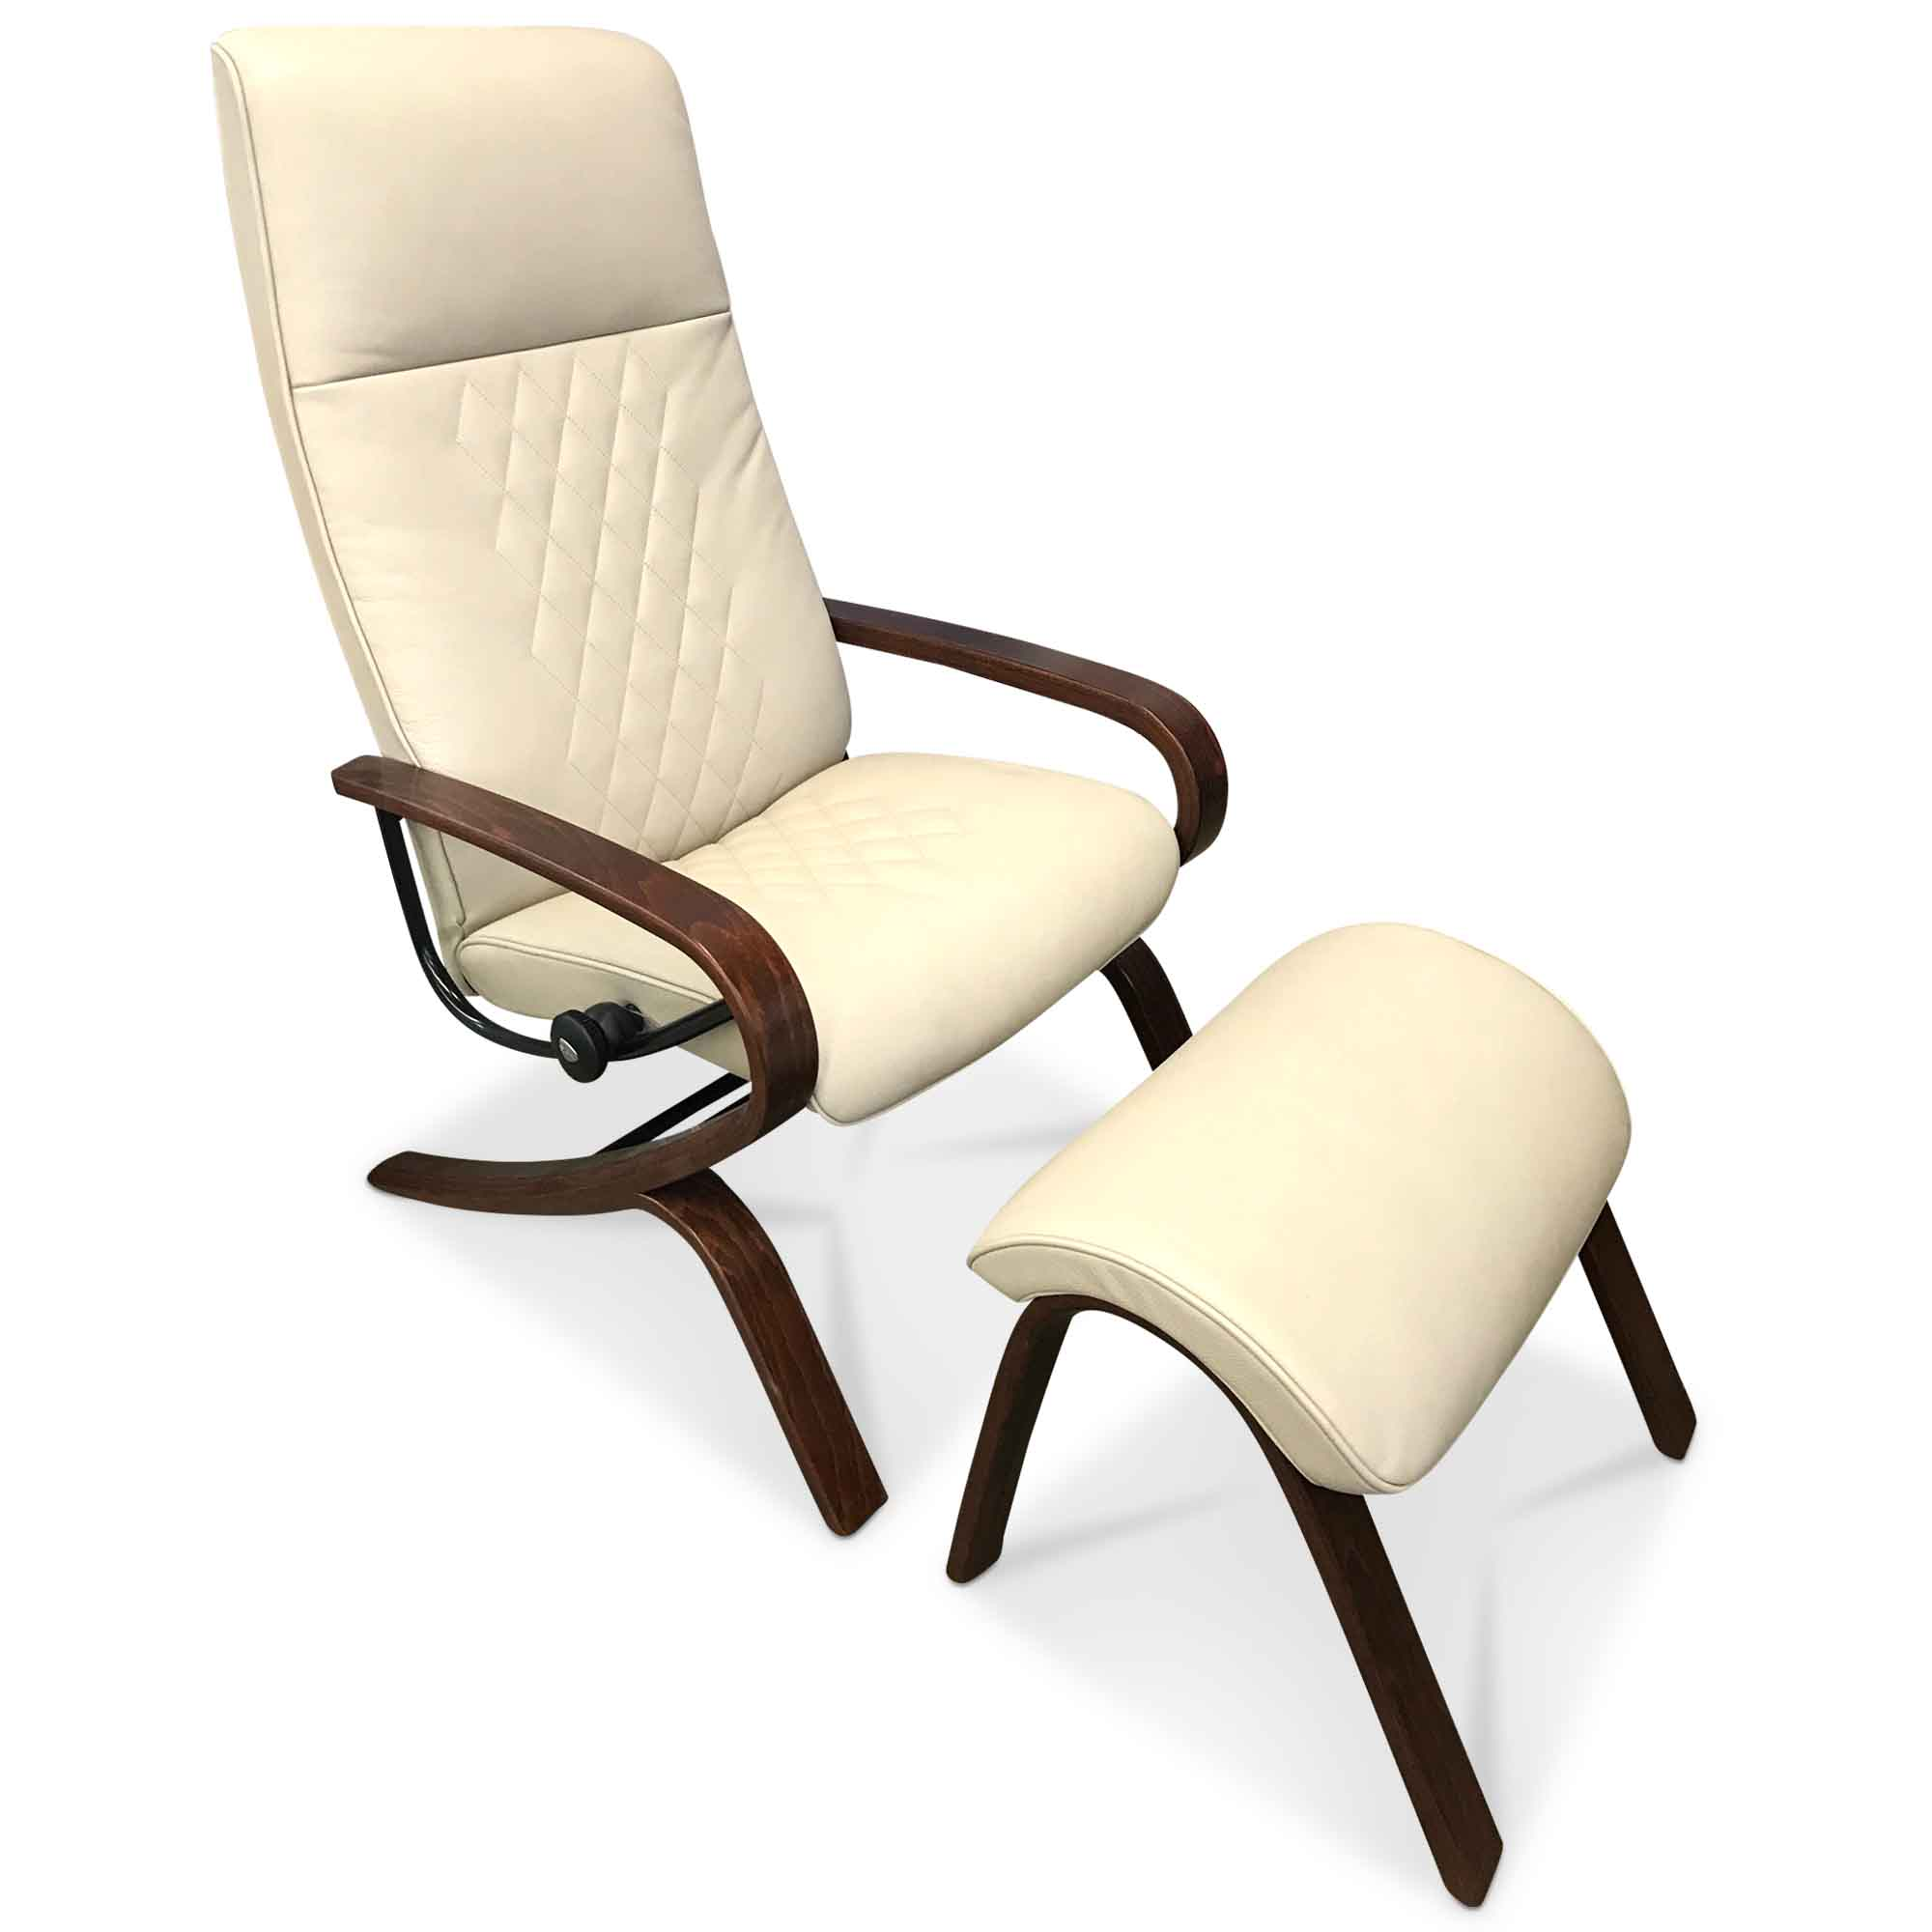 stressless designer sessel michael mit hocker leder beige ebay. Black Bedroom Furniture Sets. Home Design Ideas